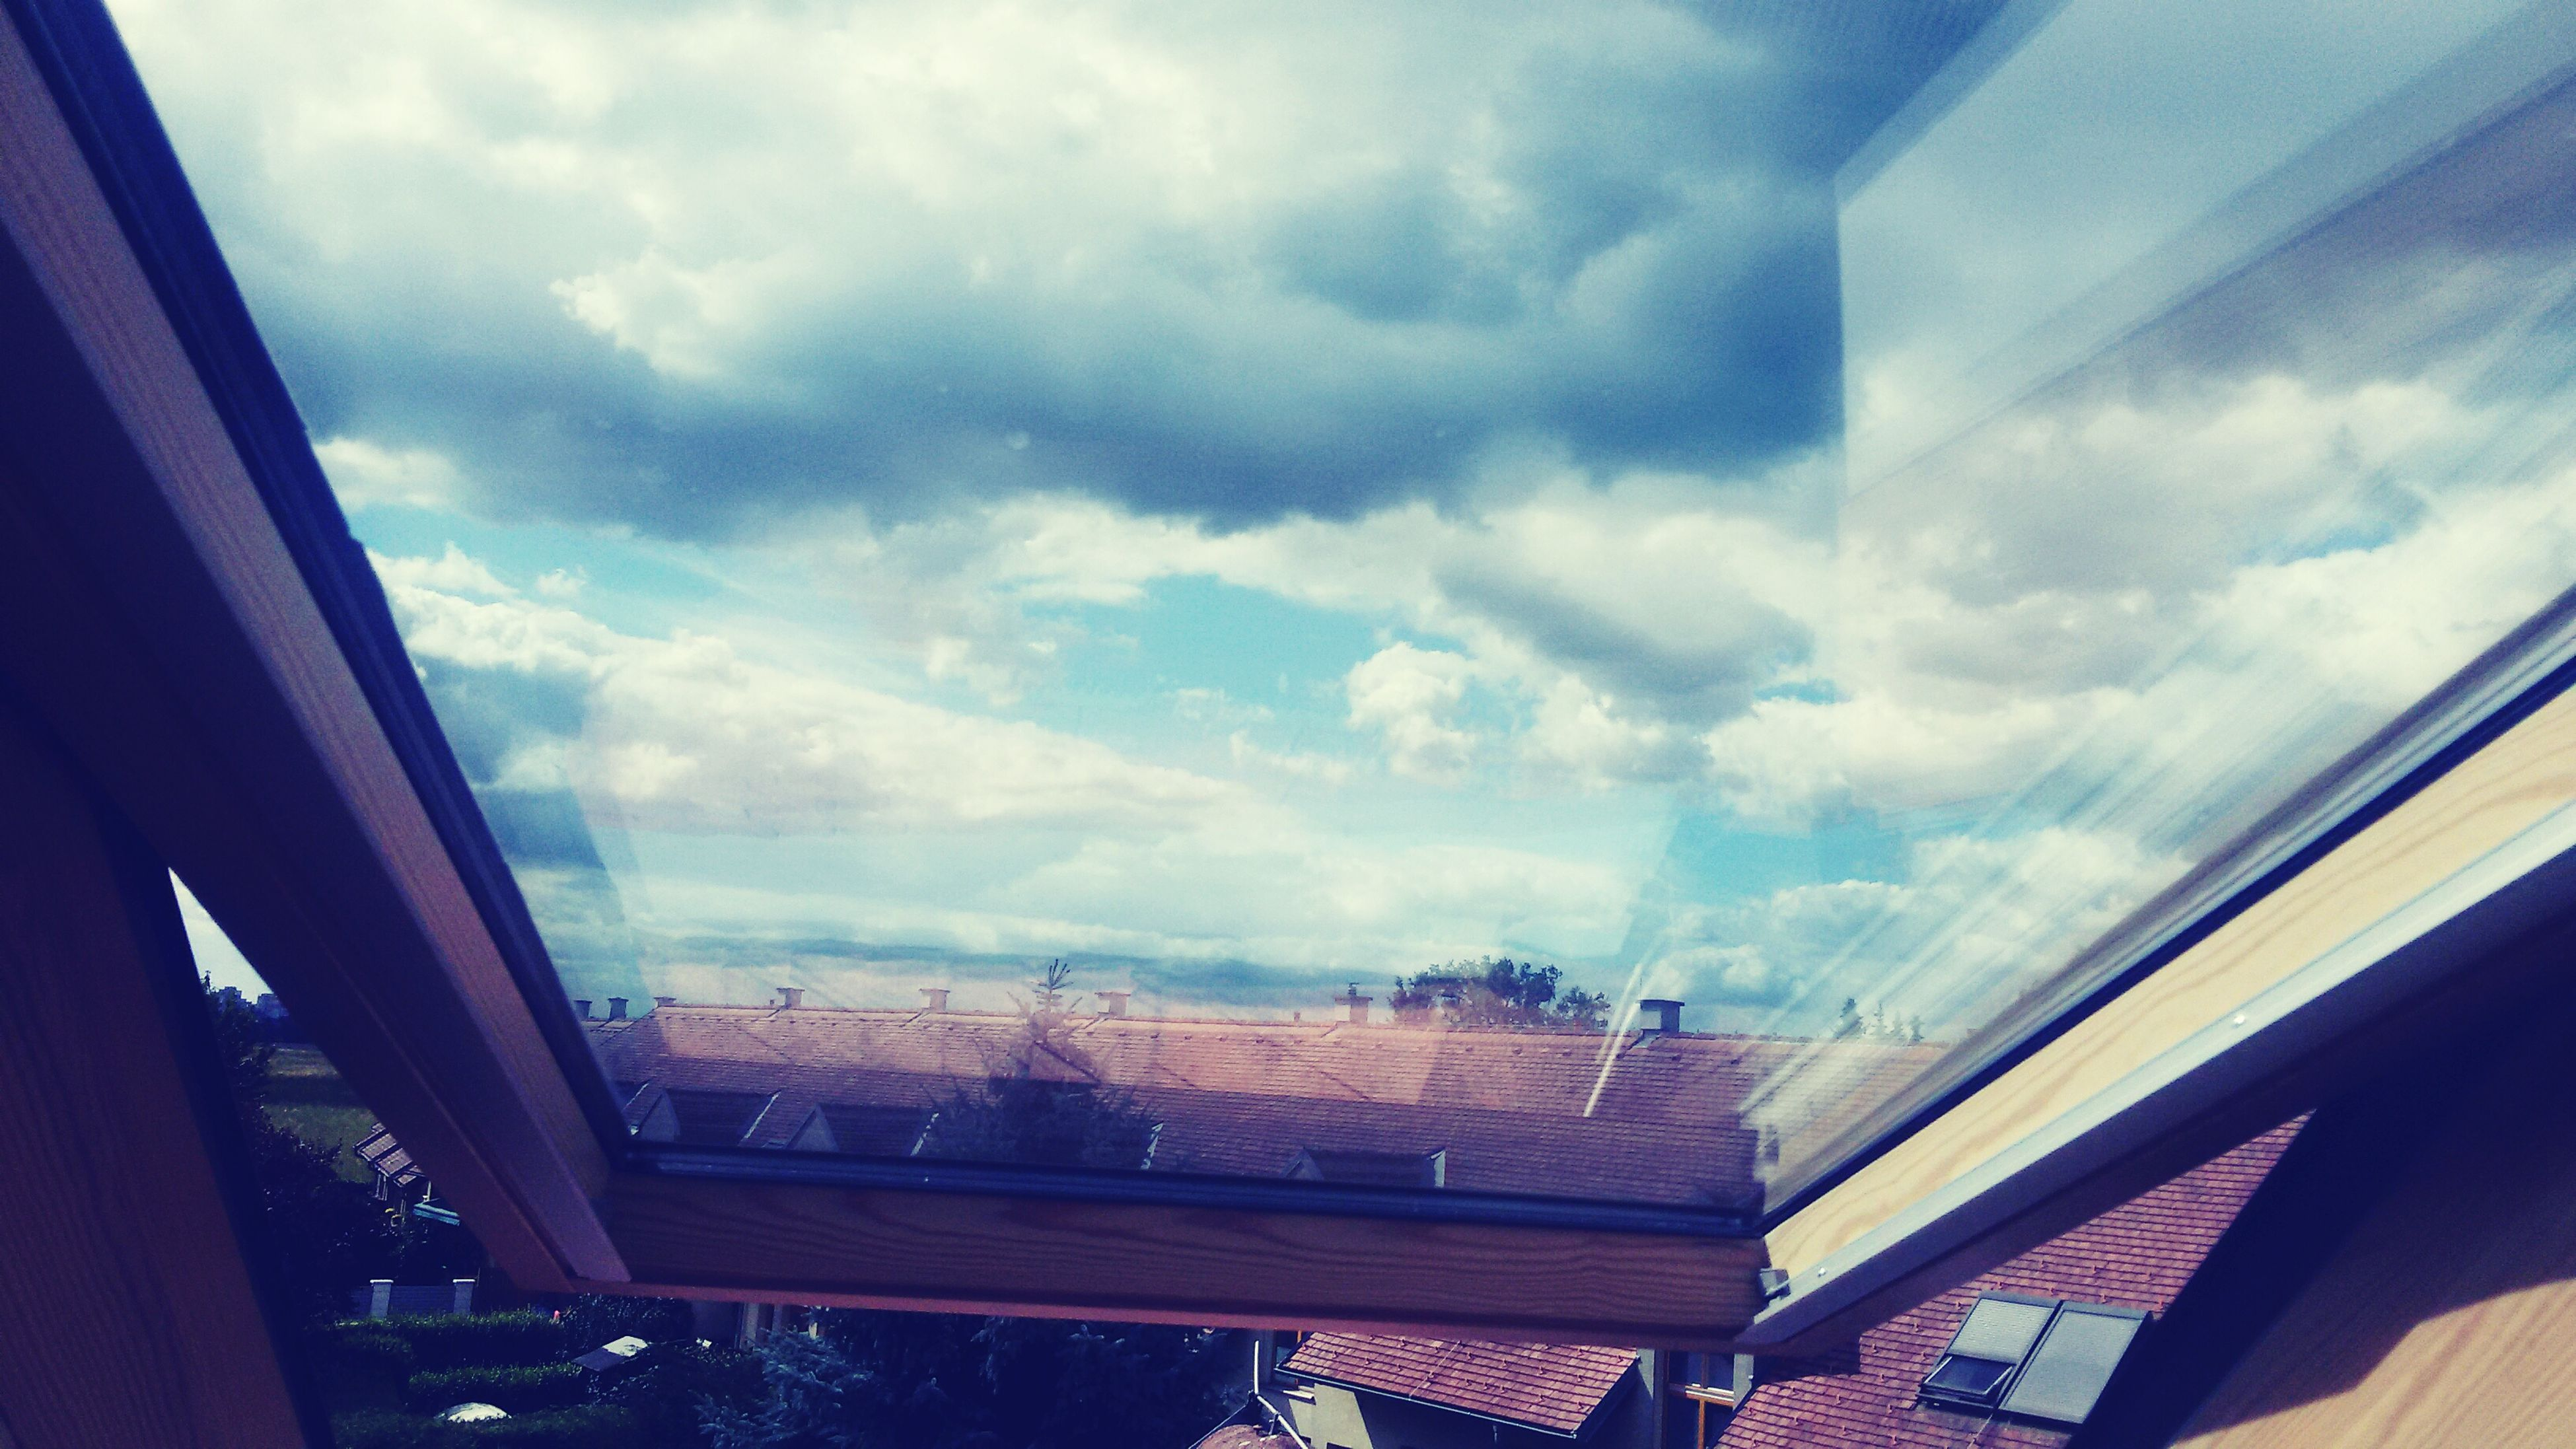 architecture, built structure, window, indoors, sky, cloud - sky, building exterior, low angle view, glass - material, cloudy, transparent, roof, cloud, residential structure, railing, house, day, ceiling, building, balcony